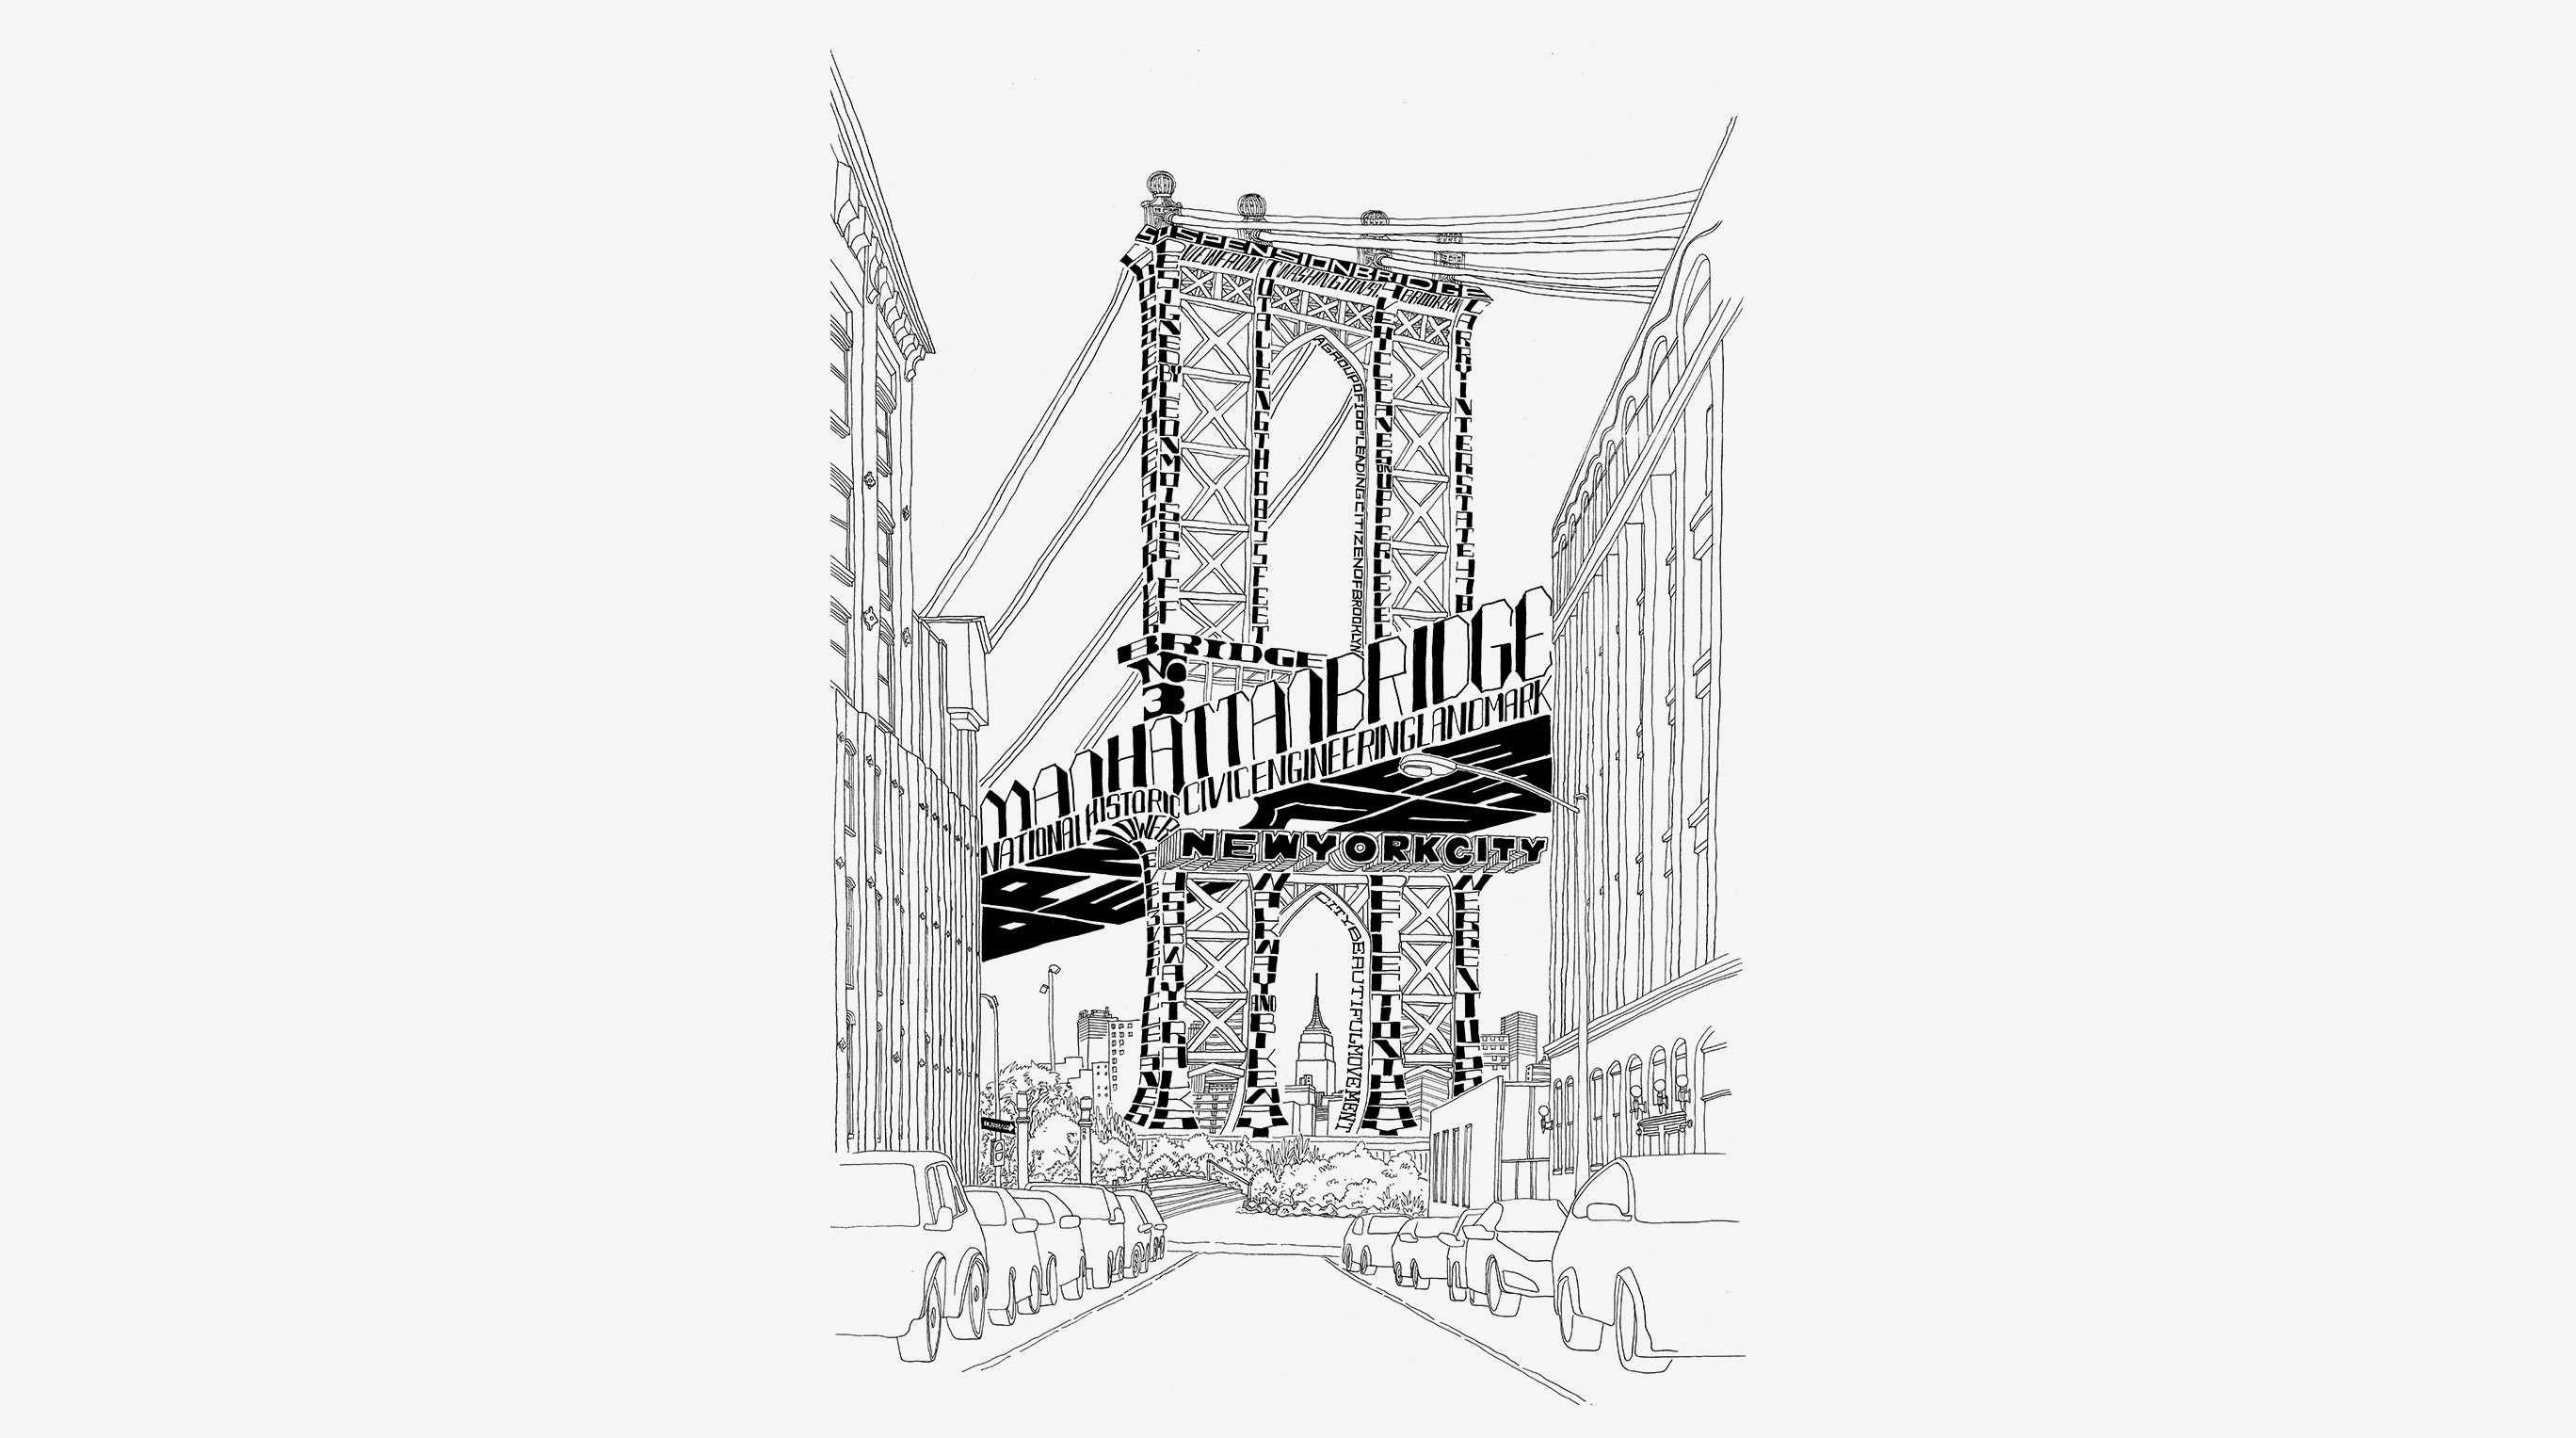 Architype 013: The Manhattan Bridge